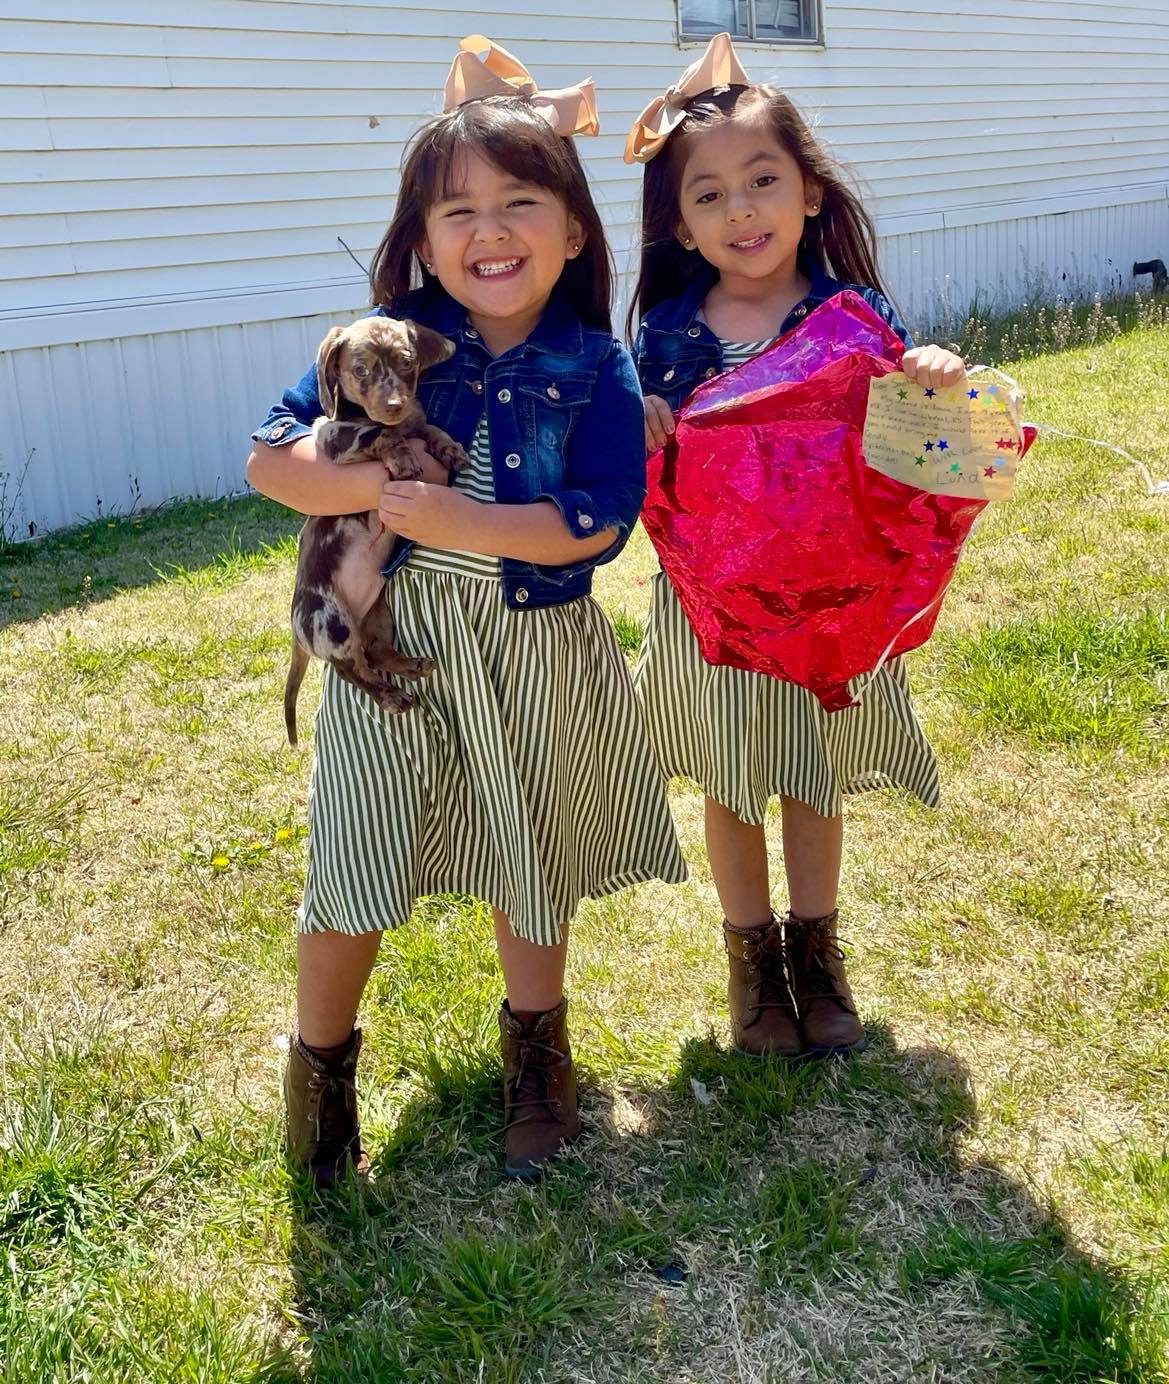 Stranger Gifts 4-Year-Old Twins a Puppy After Finding Balloon Containing Their Gift Wish List